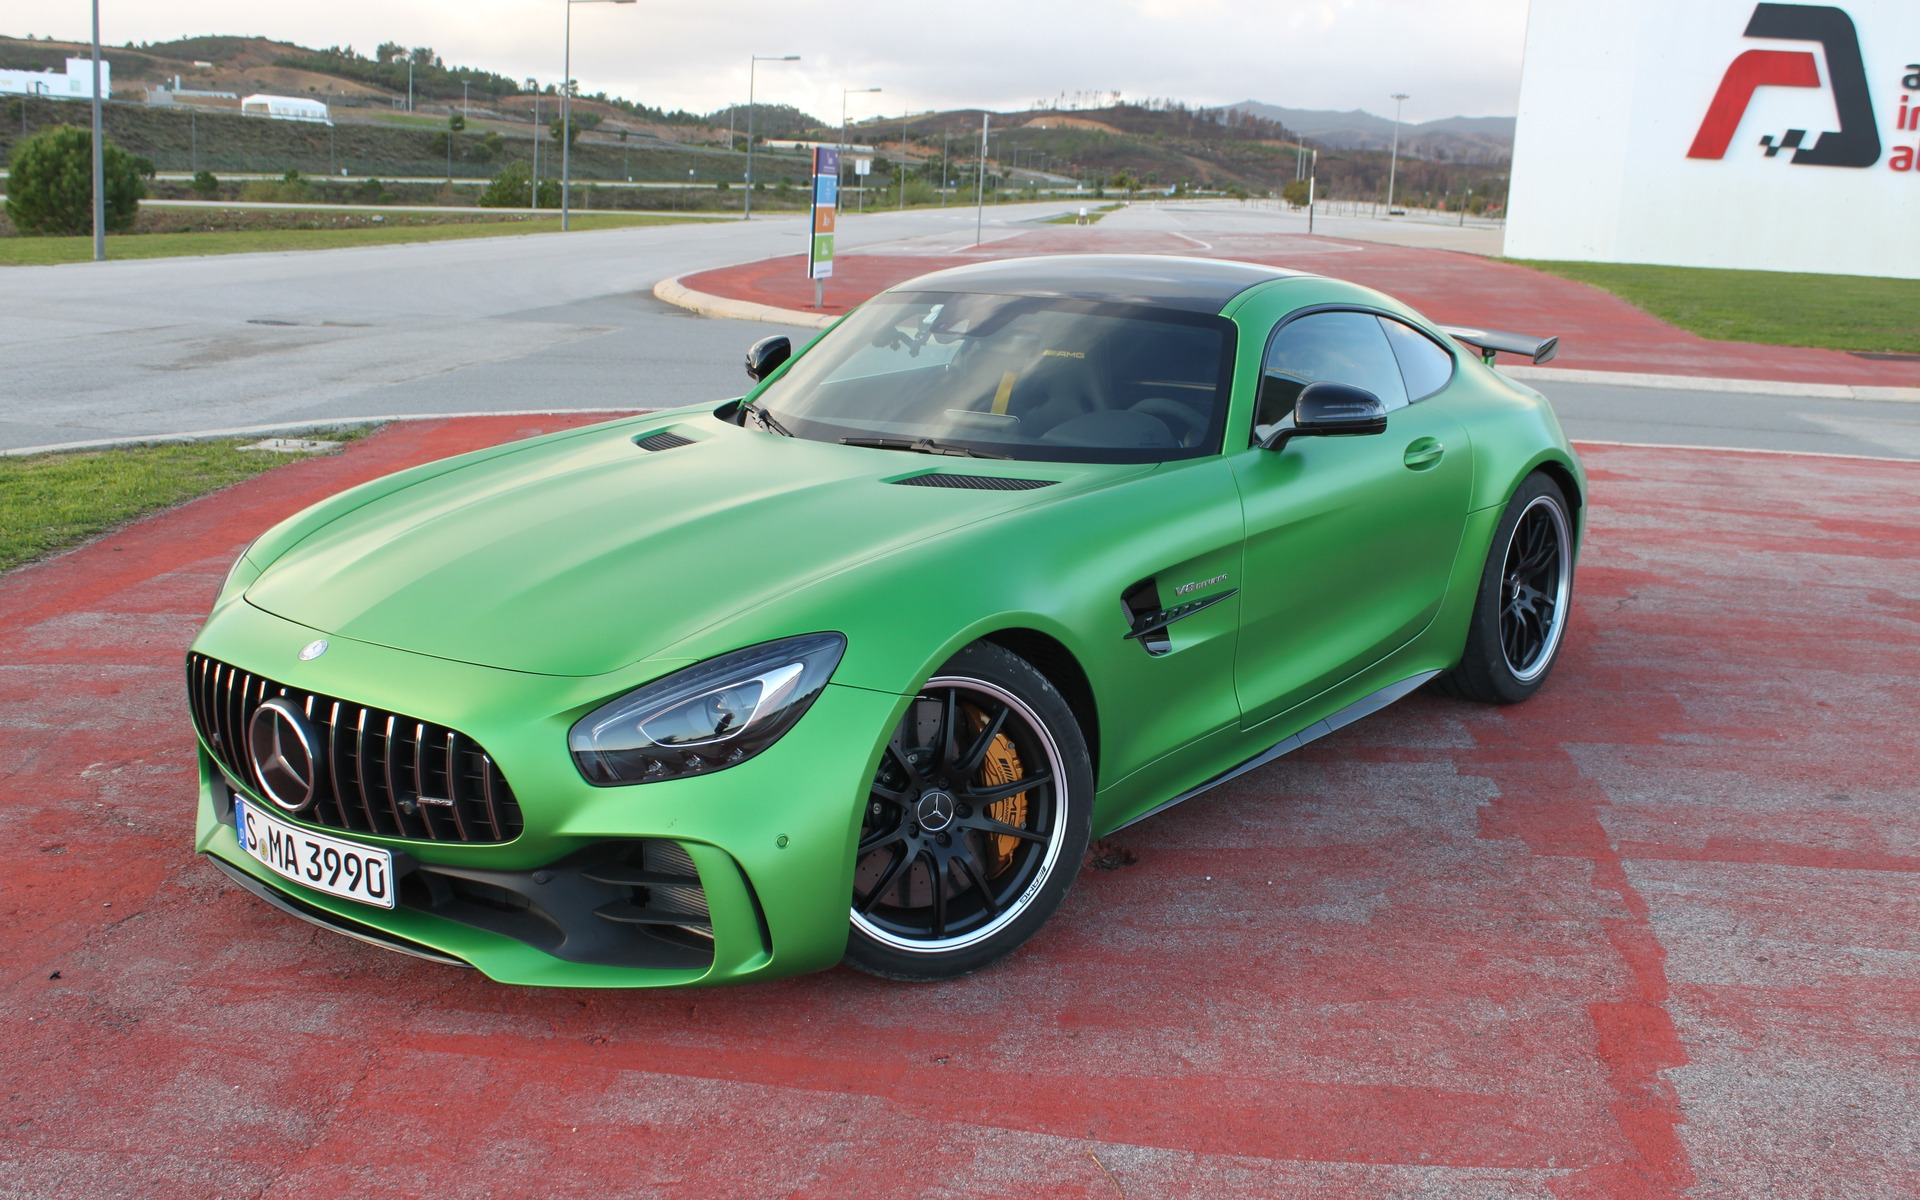 2018 Mercedes Amg Gt R Green Car Of The Year The Car Guide